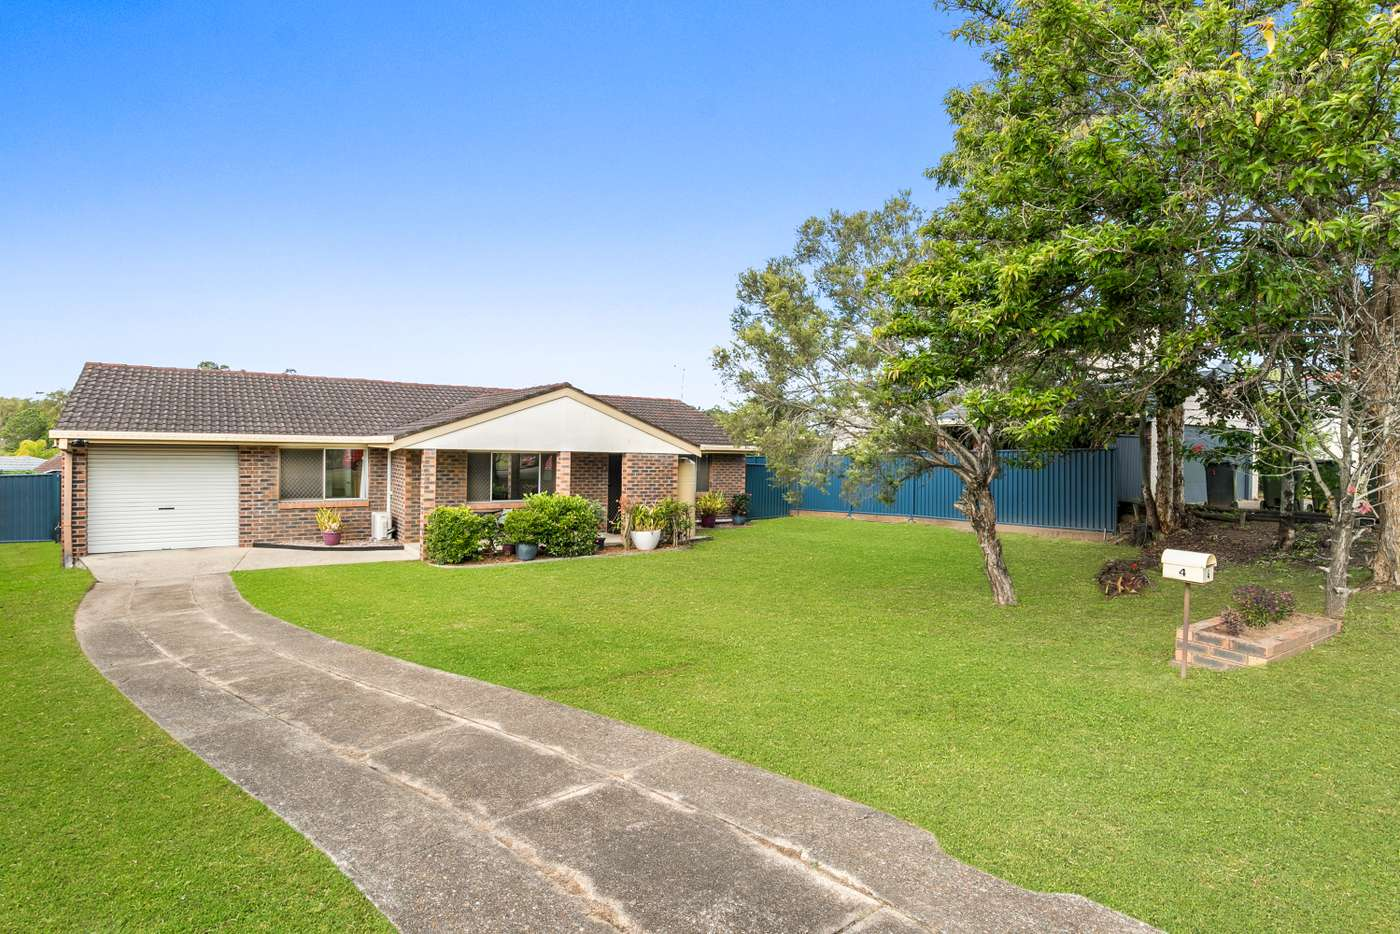 Main view of Homely house listing, 4 Poseidon Crescent, Jamboree Heights QLD 4074